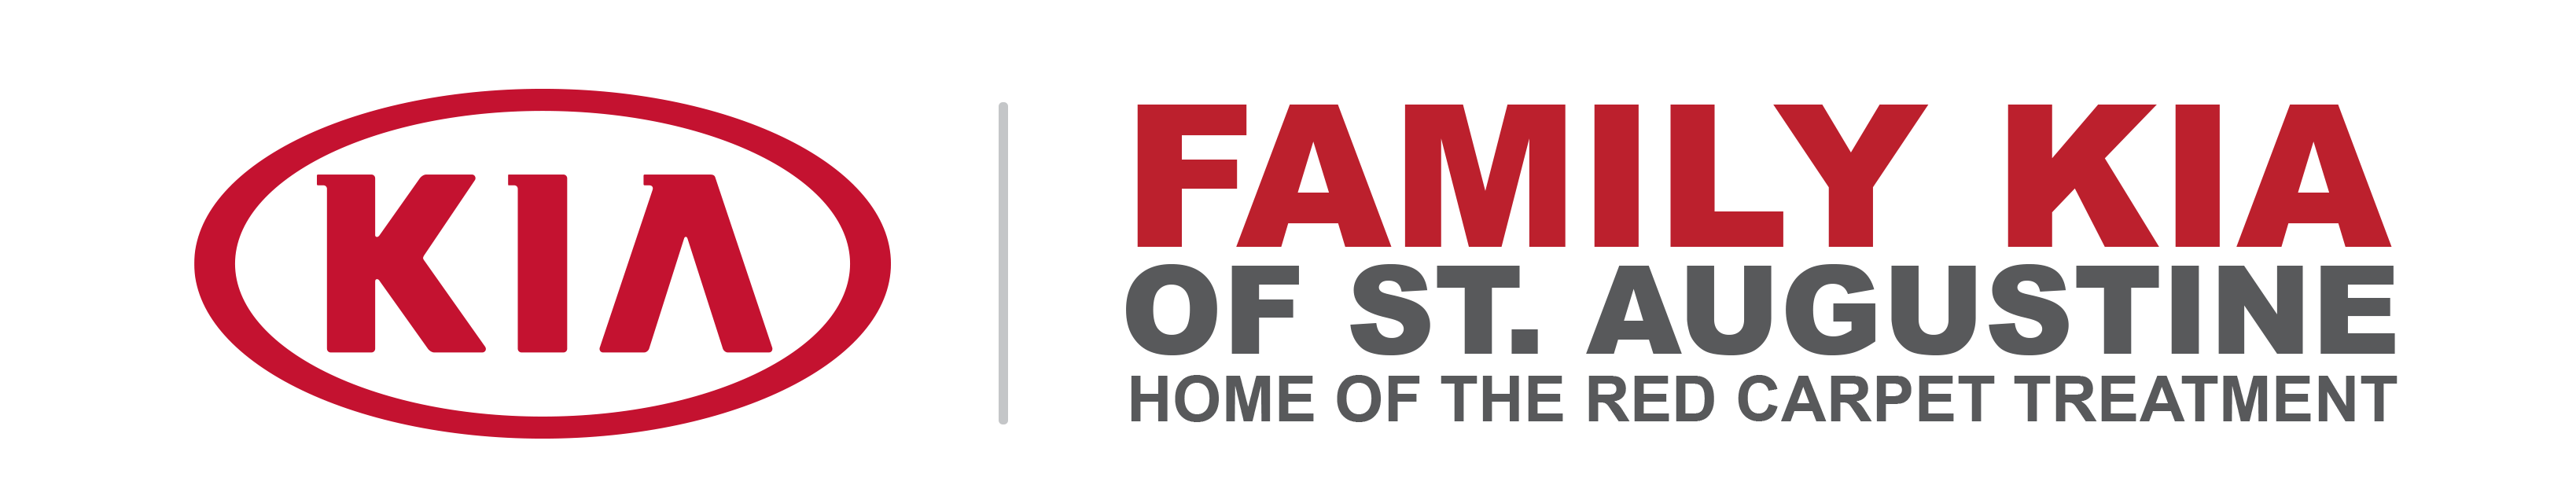 Family Kia of St. Augustine logo